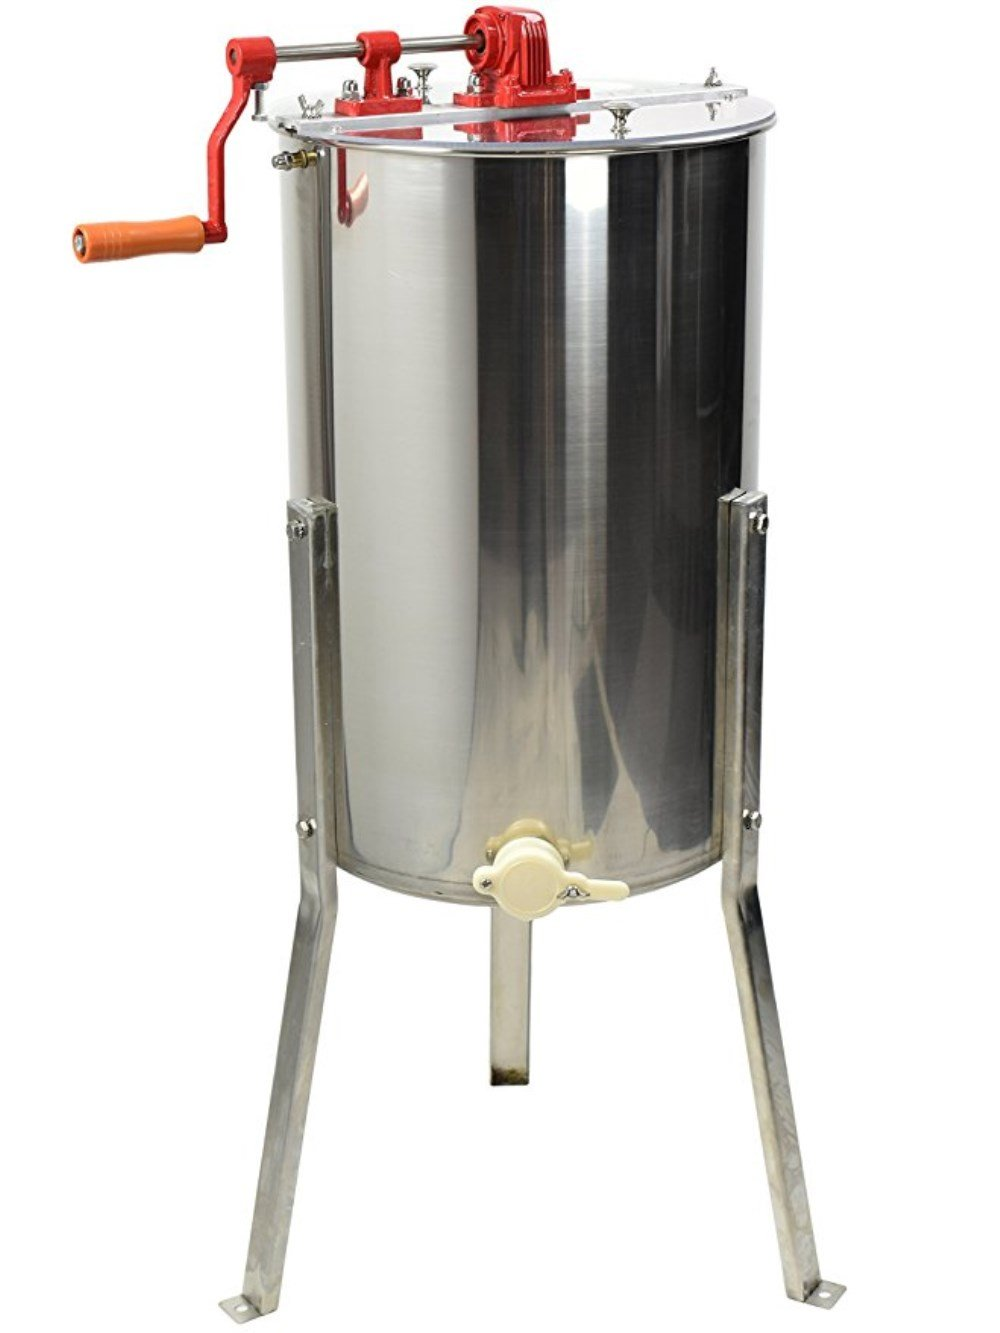 HUKOER 2 Frame Honey Extractor Separator Stainless Steel Honeycomb Spinner Drum Manual Crank Extraction Apiary Centrifuge Equipment